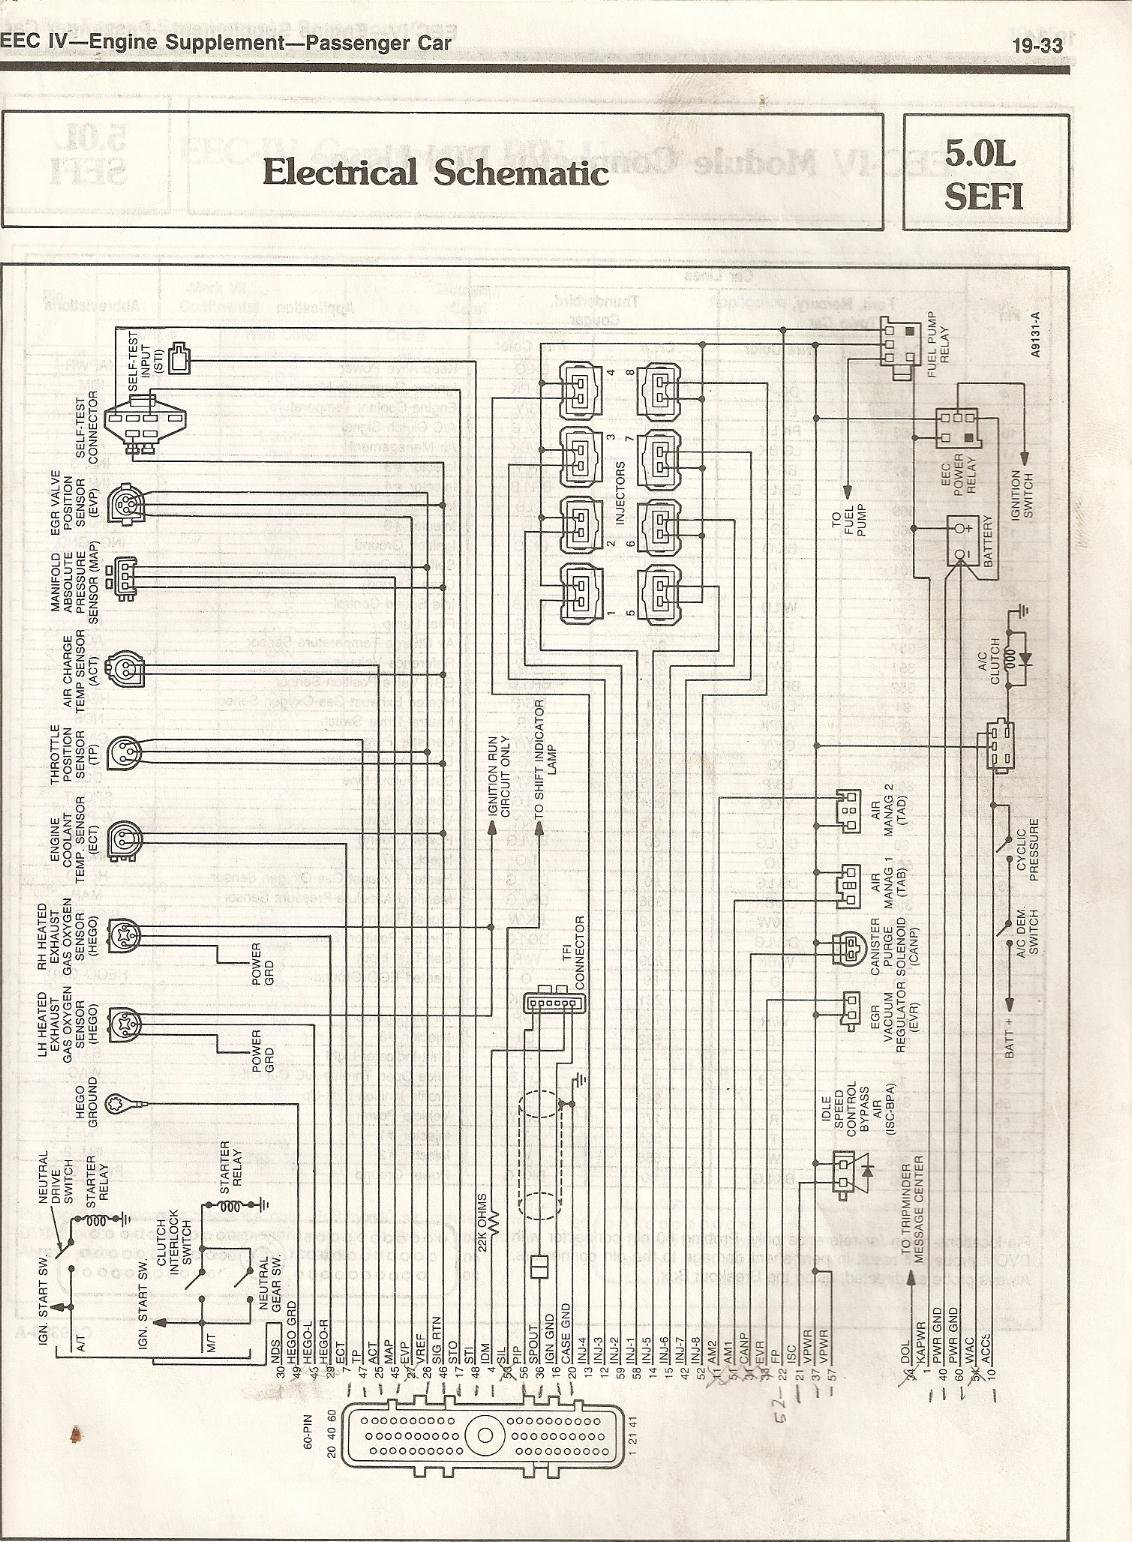 Ford 5 0 60 Pin Efi Wiring Diagram 34 Images 1994 Mustang Gt Fuse Box 495529d1454445979 302 Swap Computer Pins 1986 50 Eec Pinout To